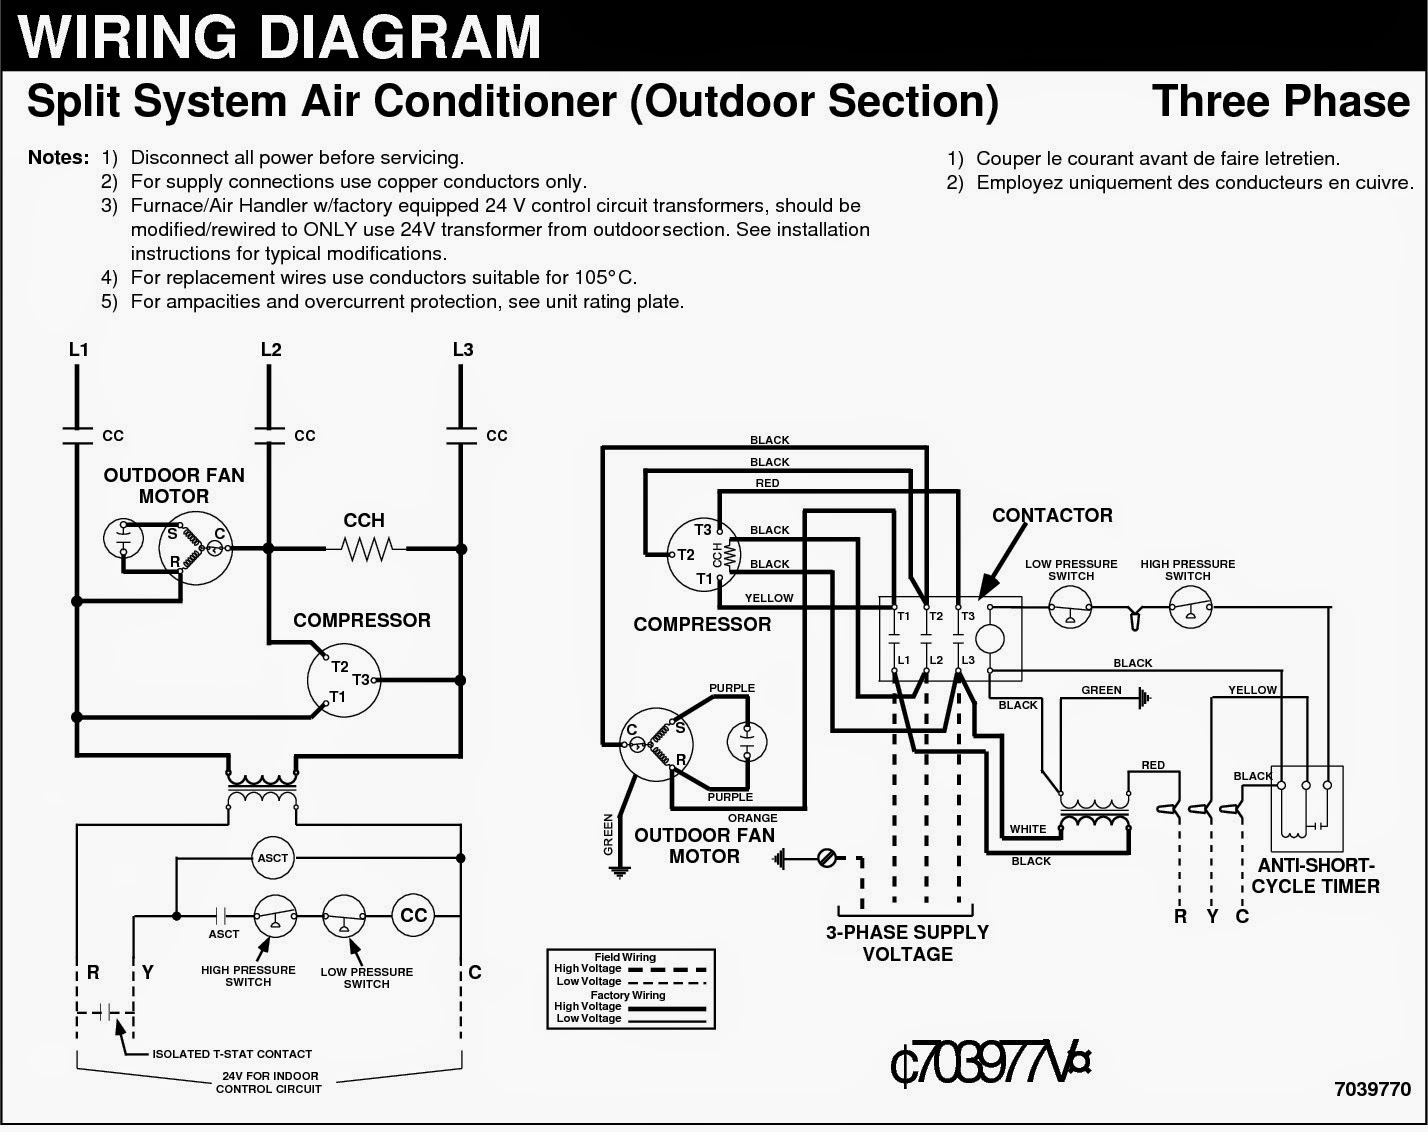 3+phase electrical wiring diagrams for air conditioning systems part two air conditioner compressor wiring diagram at reclaimingppi.co